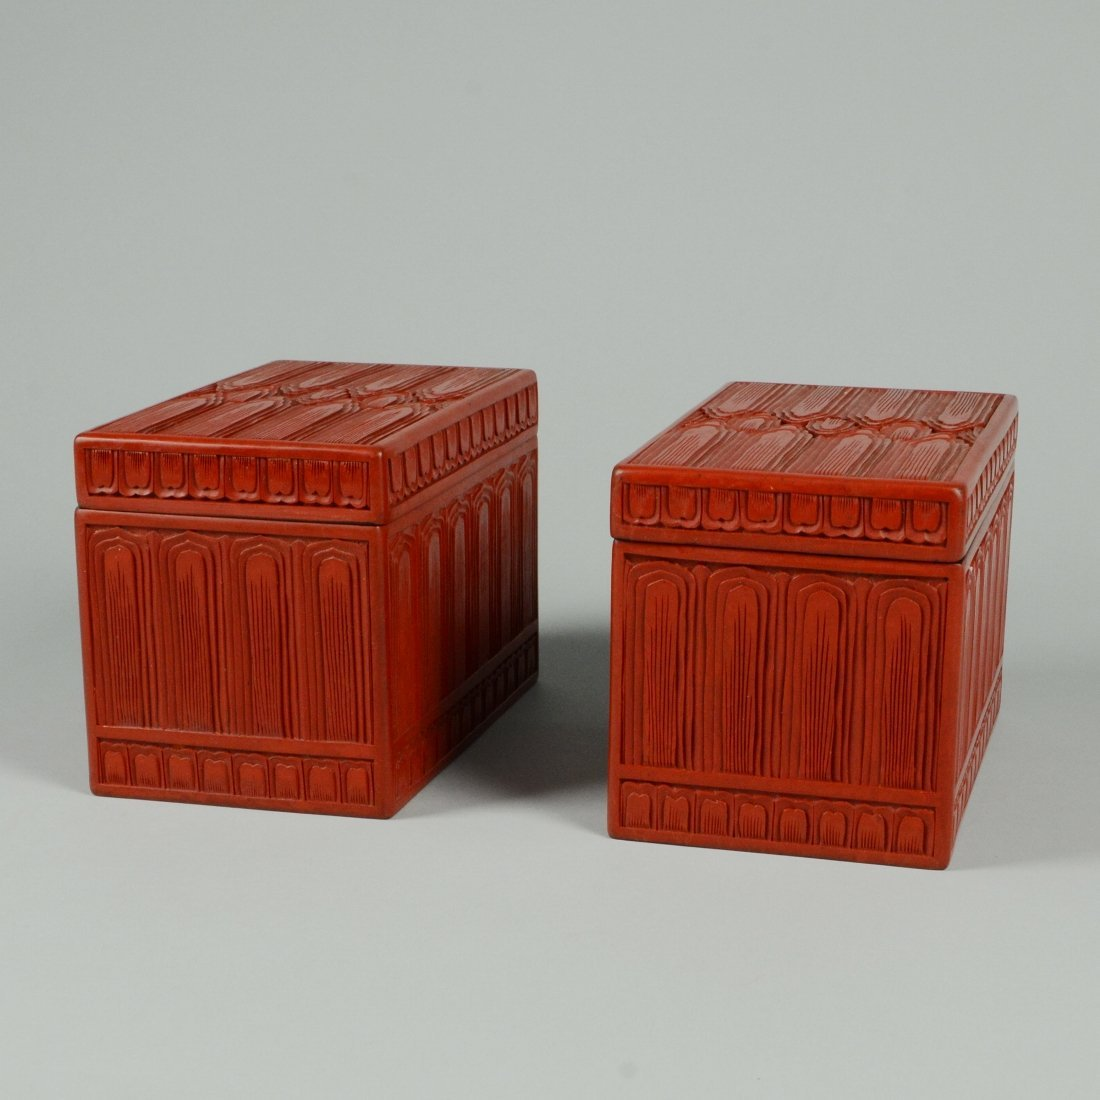 8: PAIR OF RED LACQUER BOXES